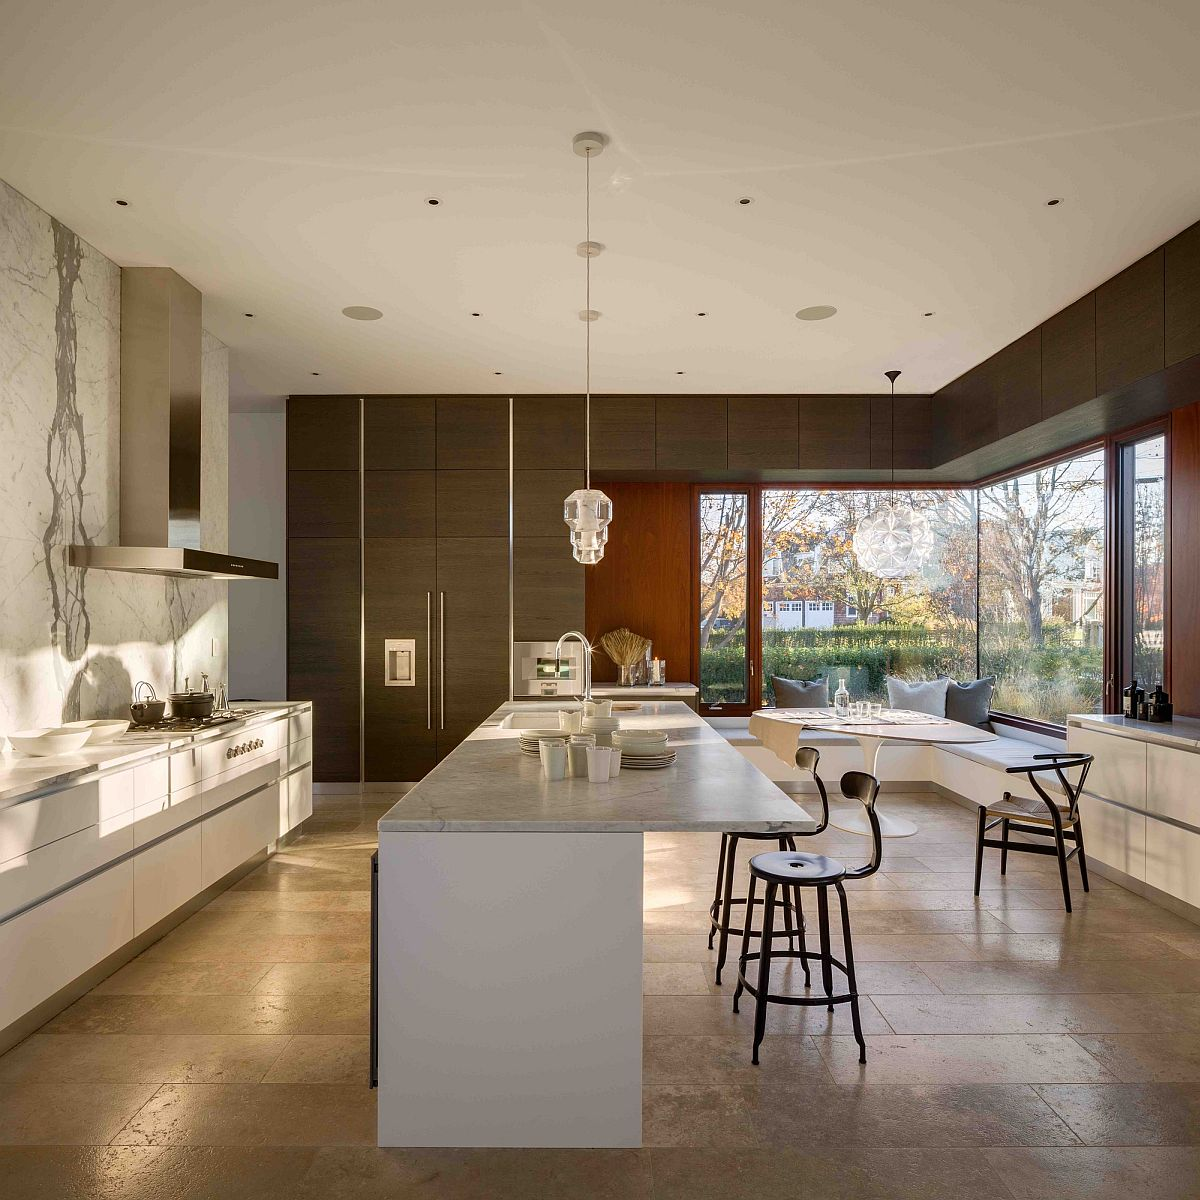 Corner window in the kitchen with seating gives a glimpse of the outdoors